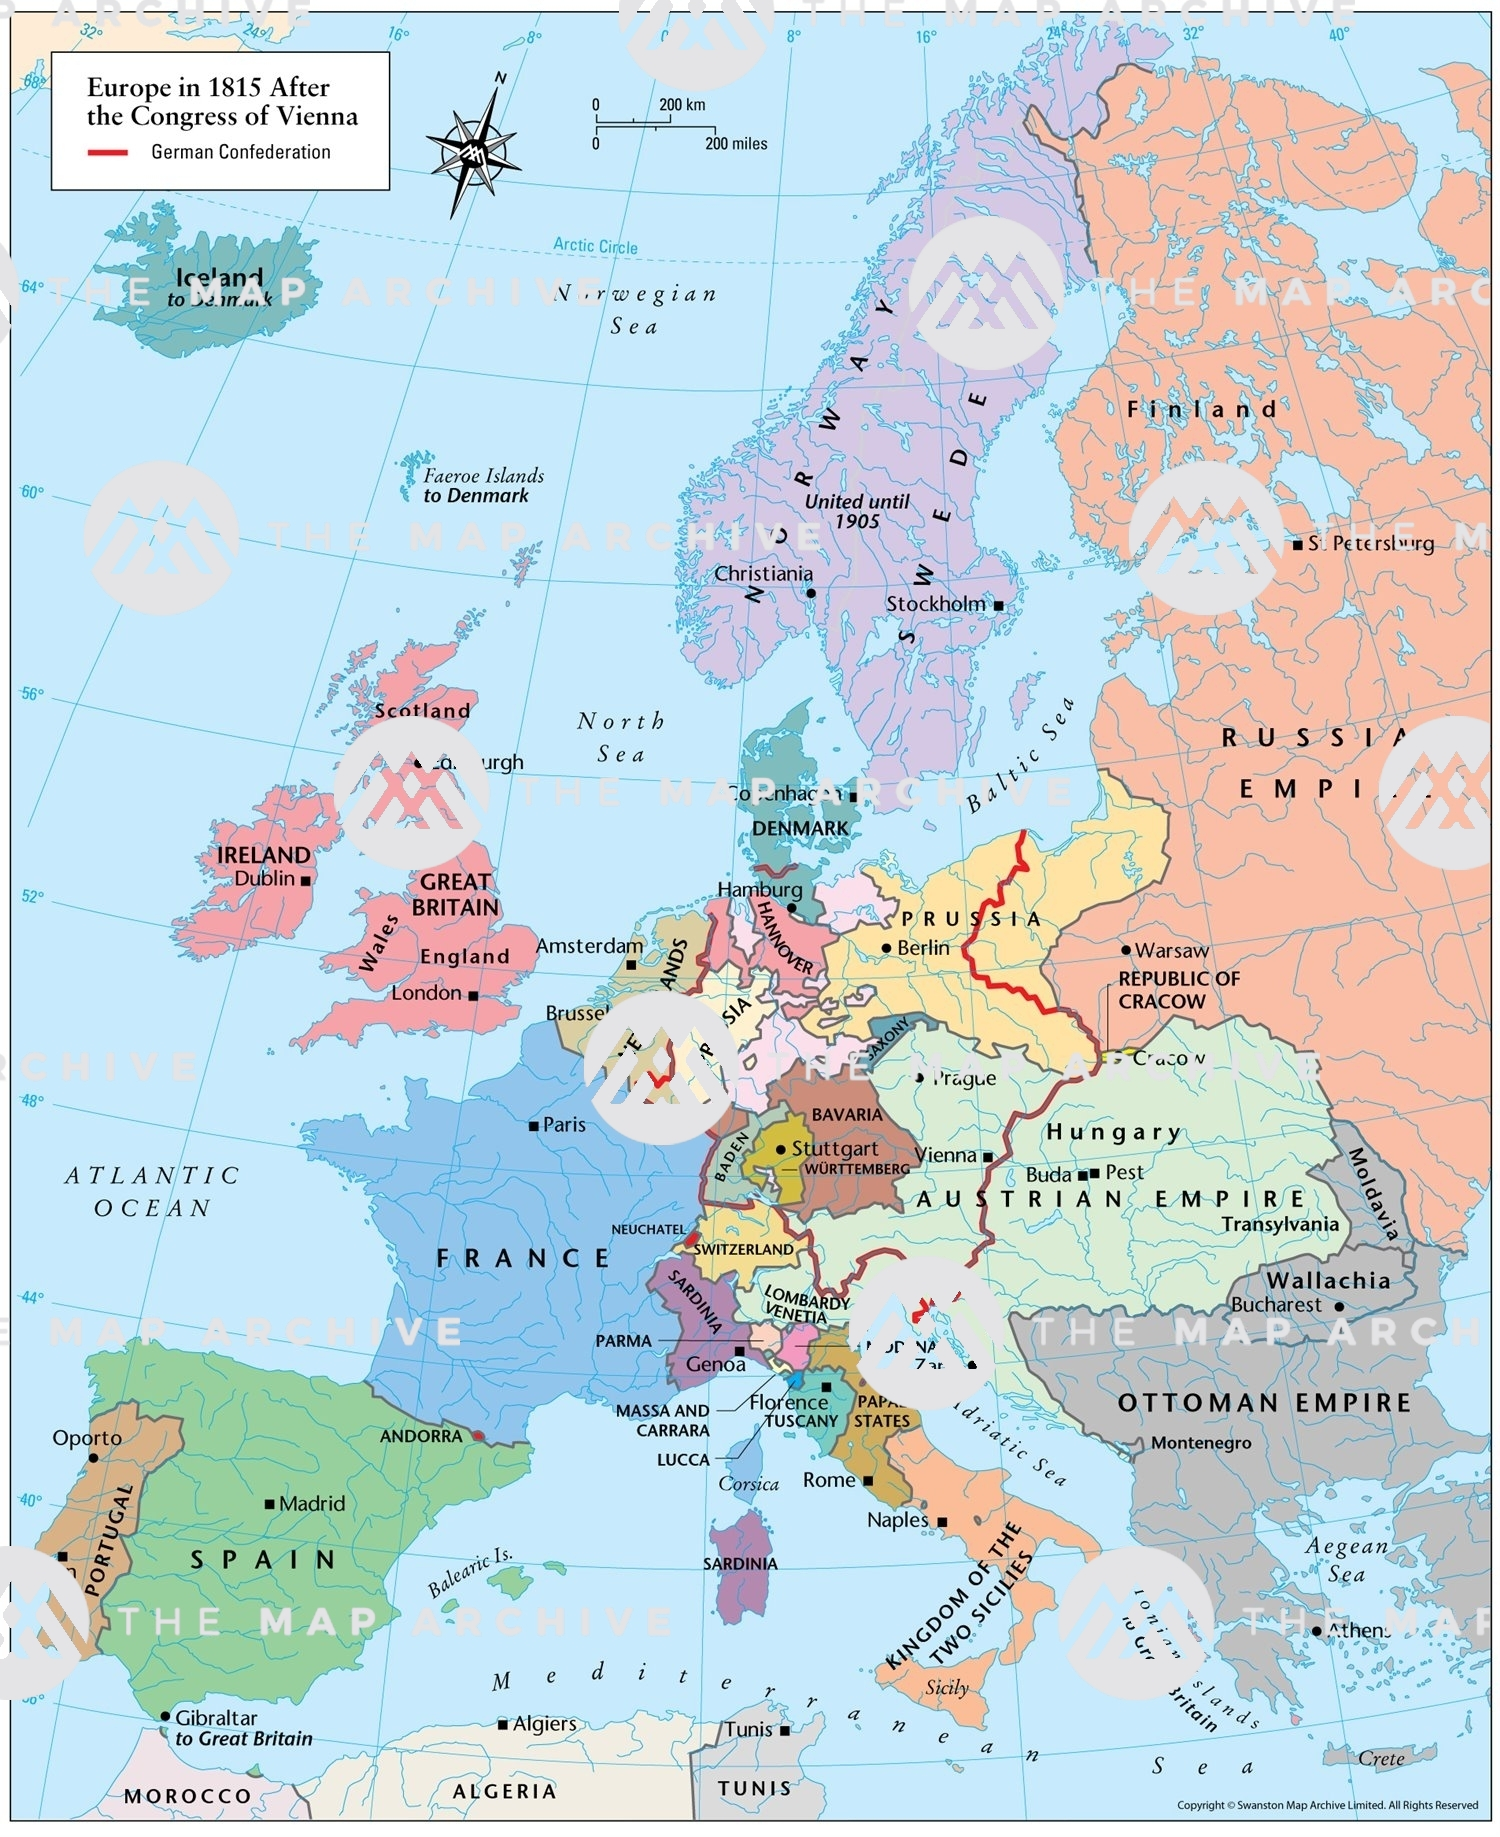 map of europe in 1815 Europe in 1815 After the Congress of Vienna